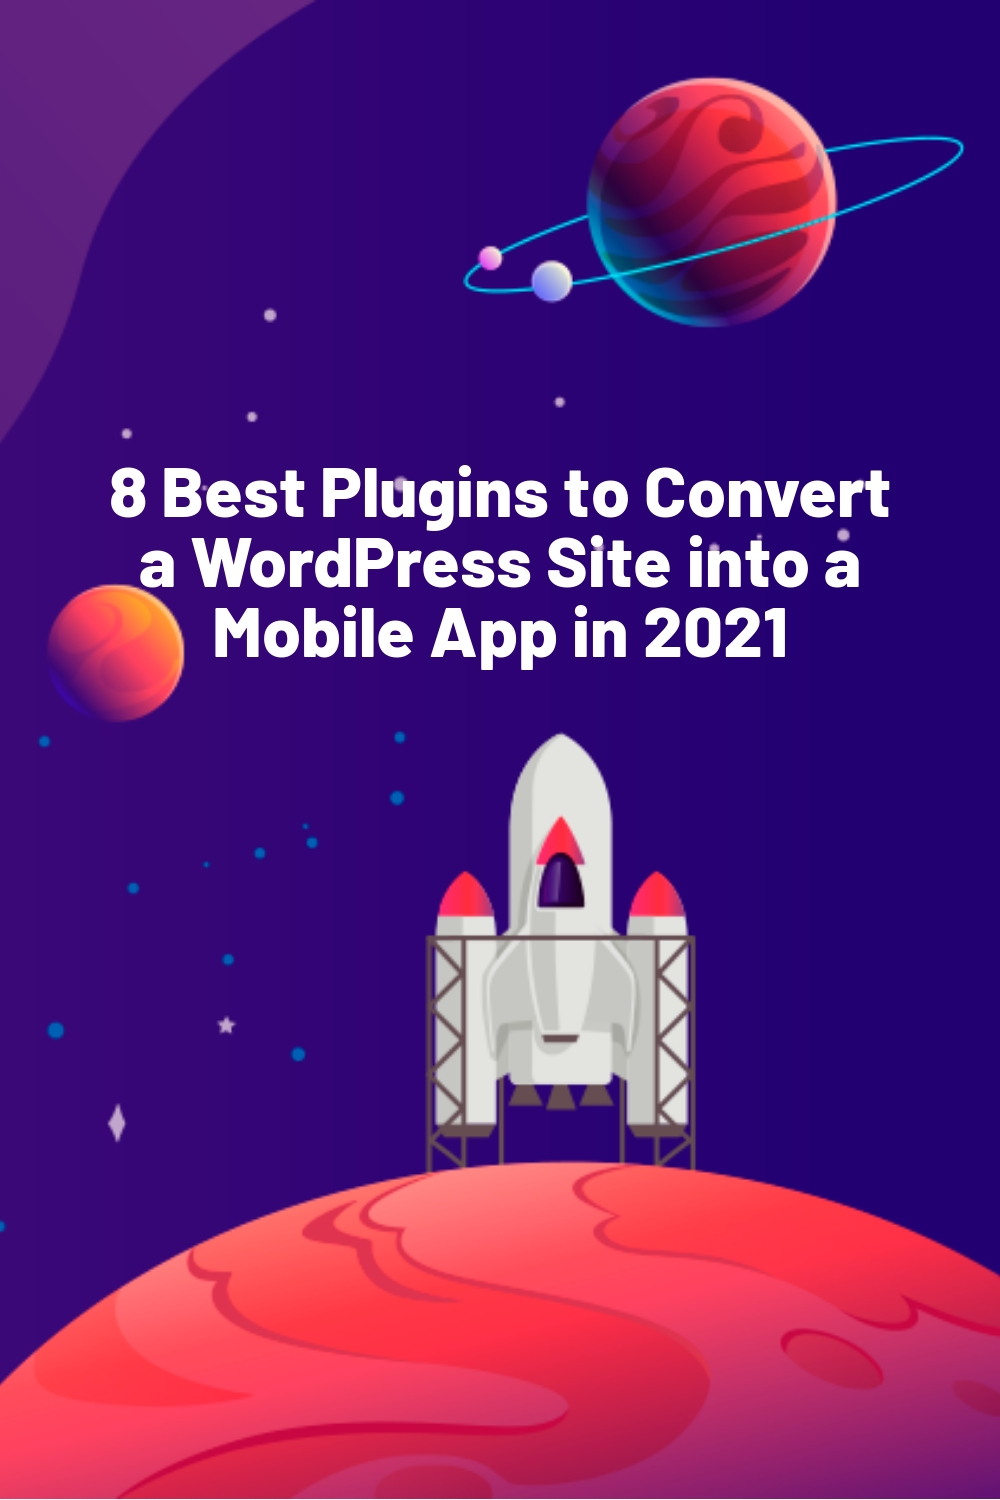 8 Best Plugins to Convert a WordPress Site into a Mobile App in 2021